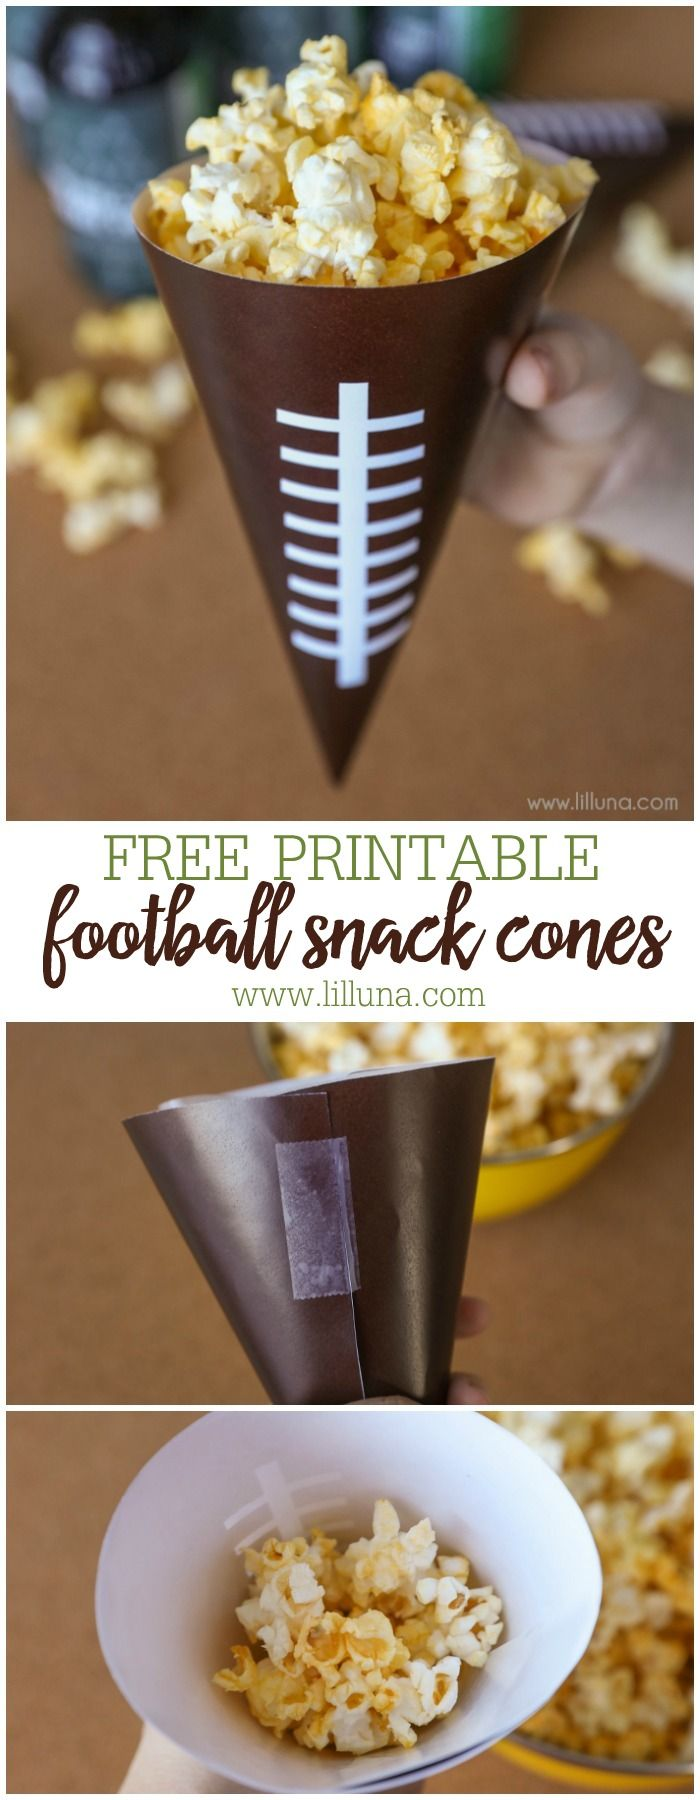 PRINTABLE Football Snack Cones - fill these free prints with your favorite snack for the Big Game.